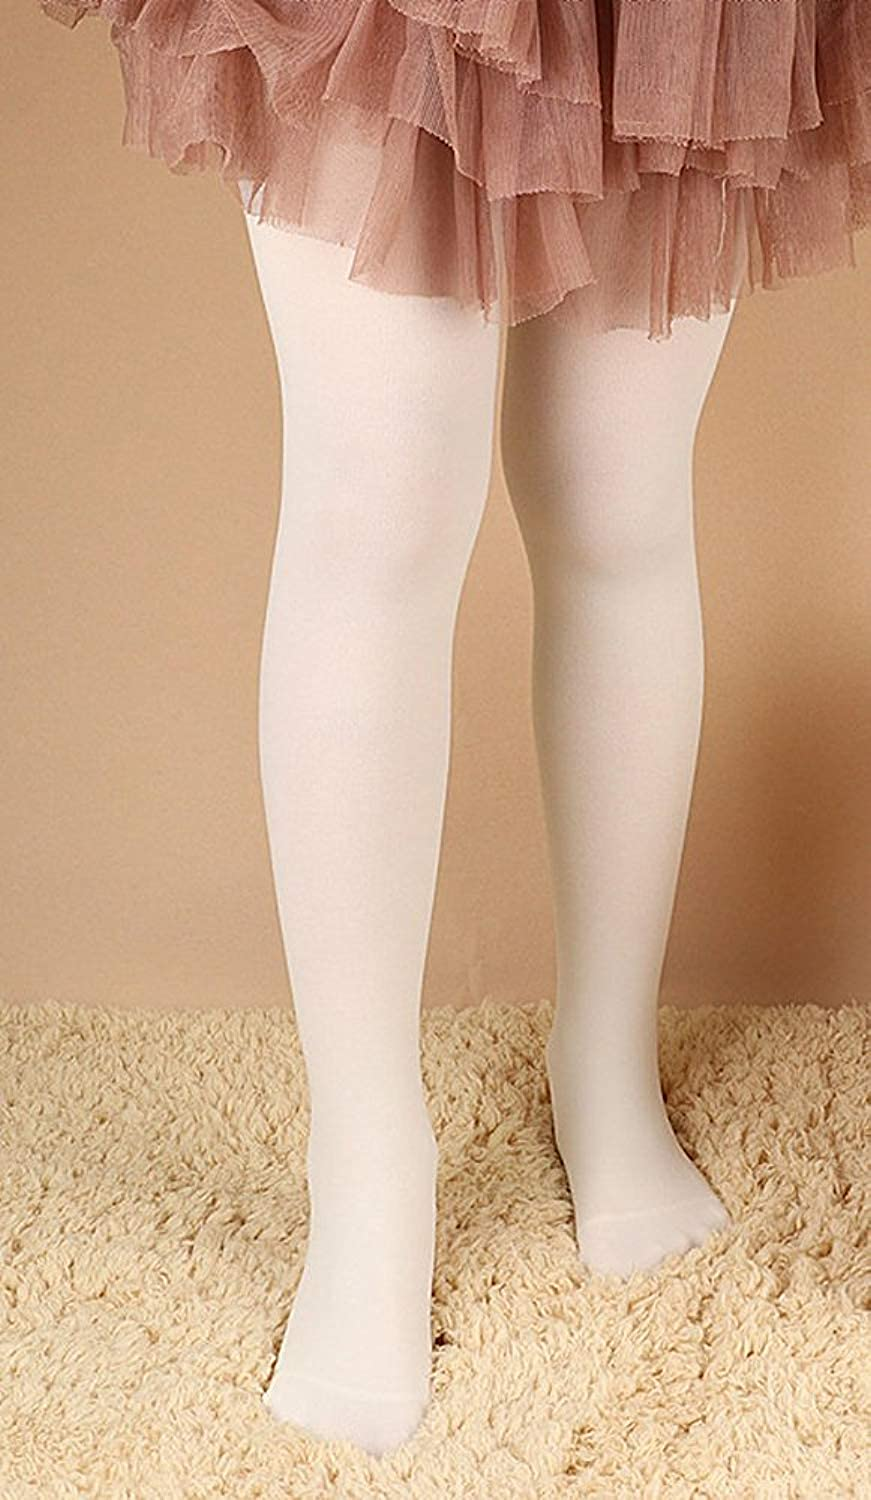 CHUNG Girls Footed Tights Light Weight Stretchy 60D Multi Candy Color Stage Play Costumes 2-12Y